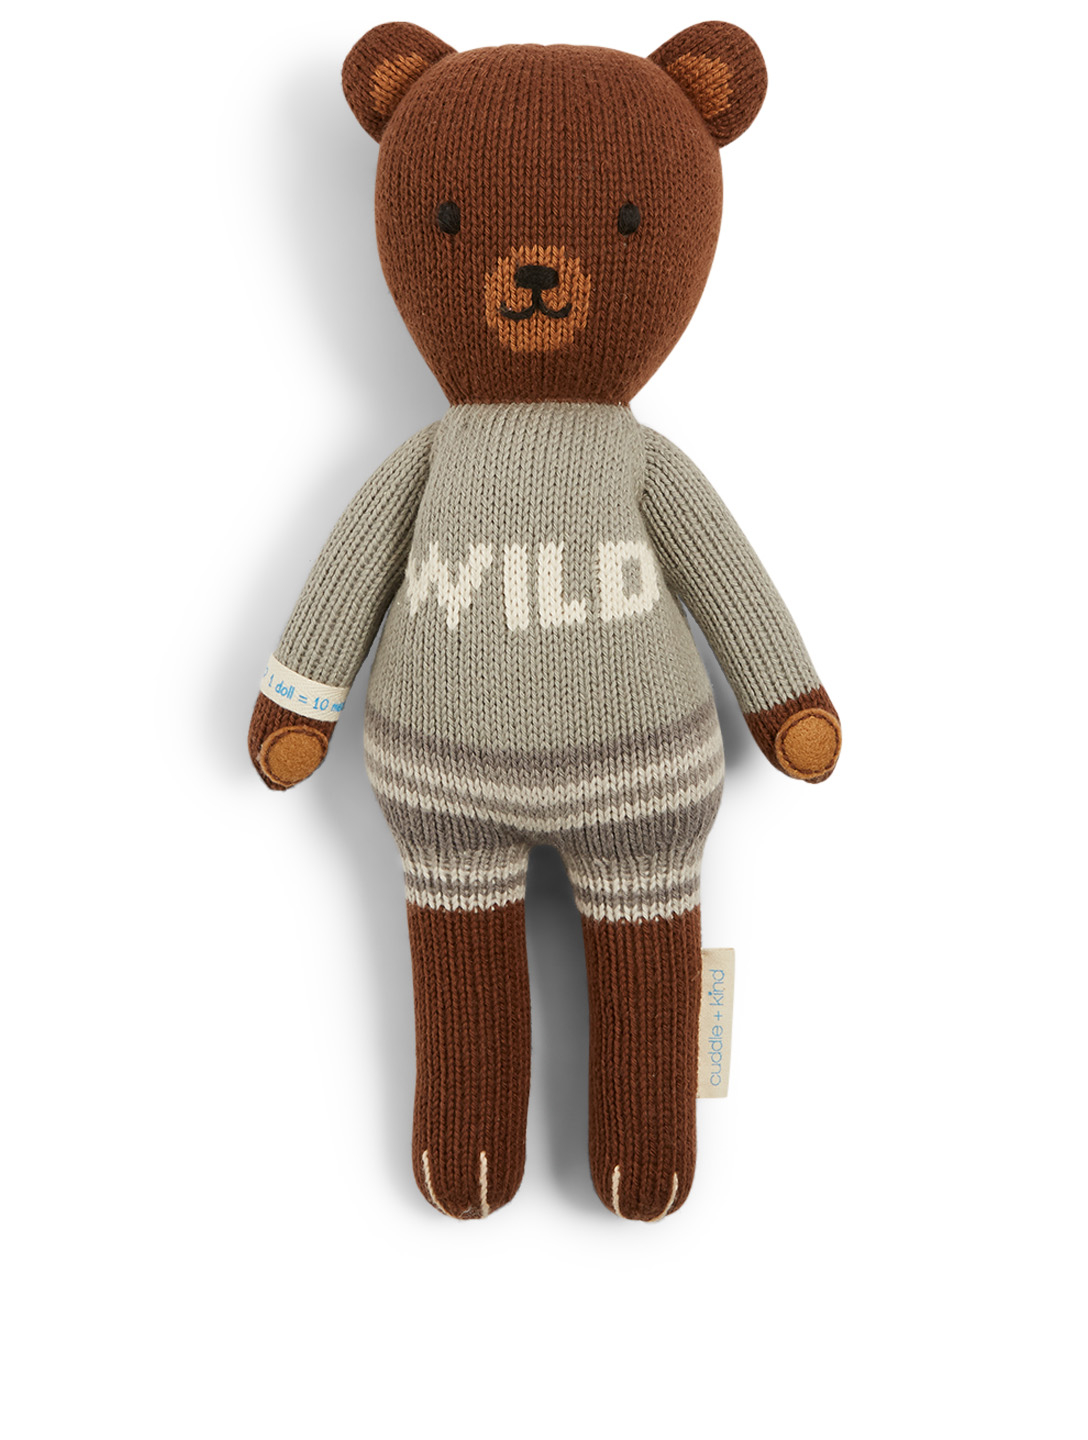 CUDDLE+KIND Mini Oliver The Bear Knit Doll H Project